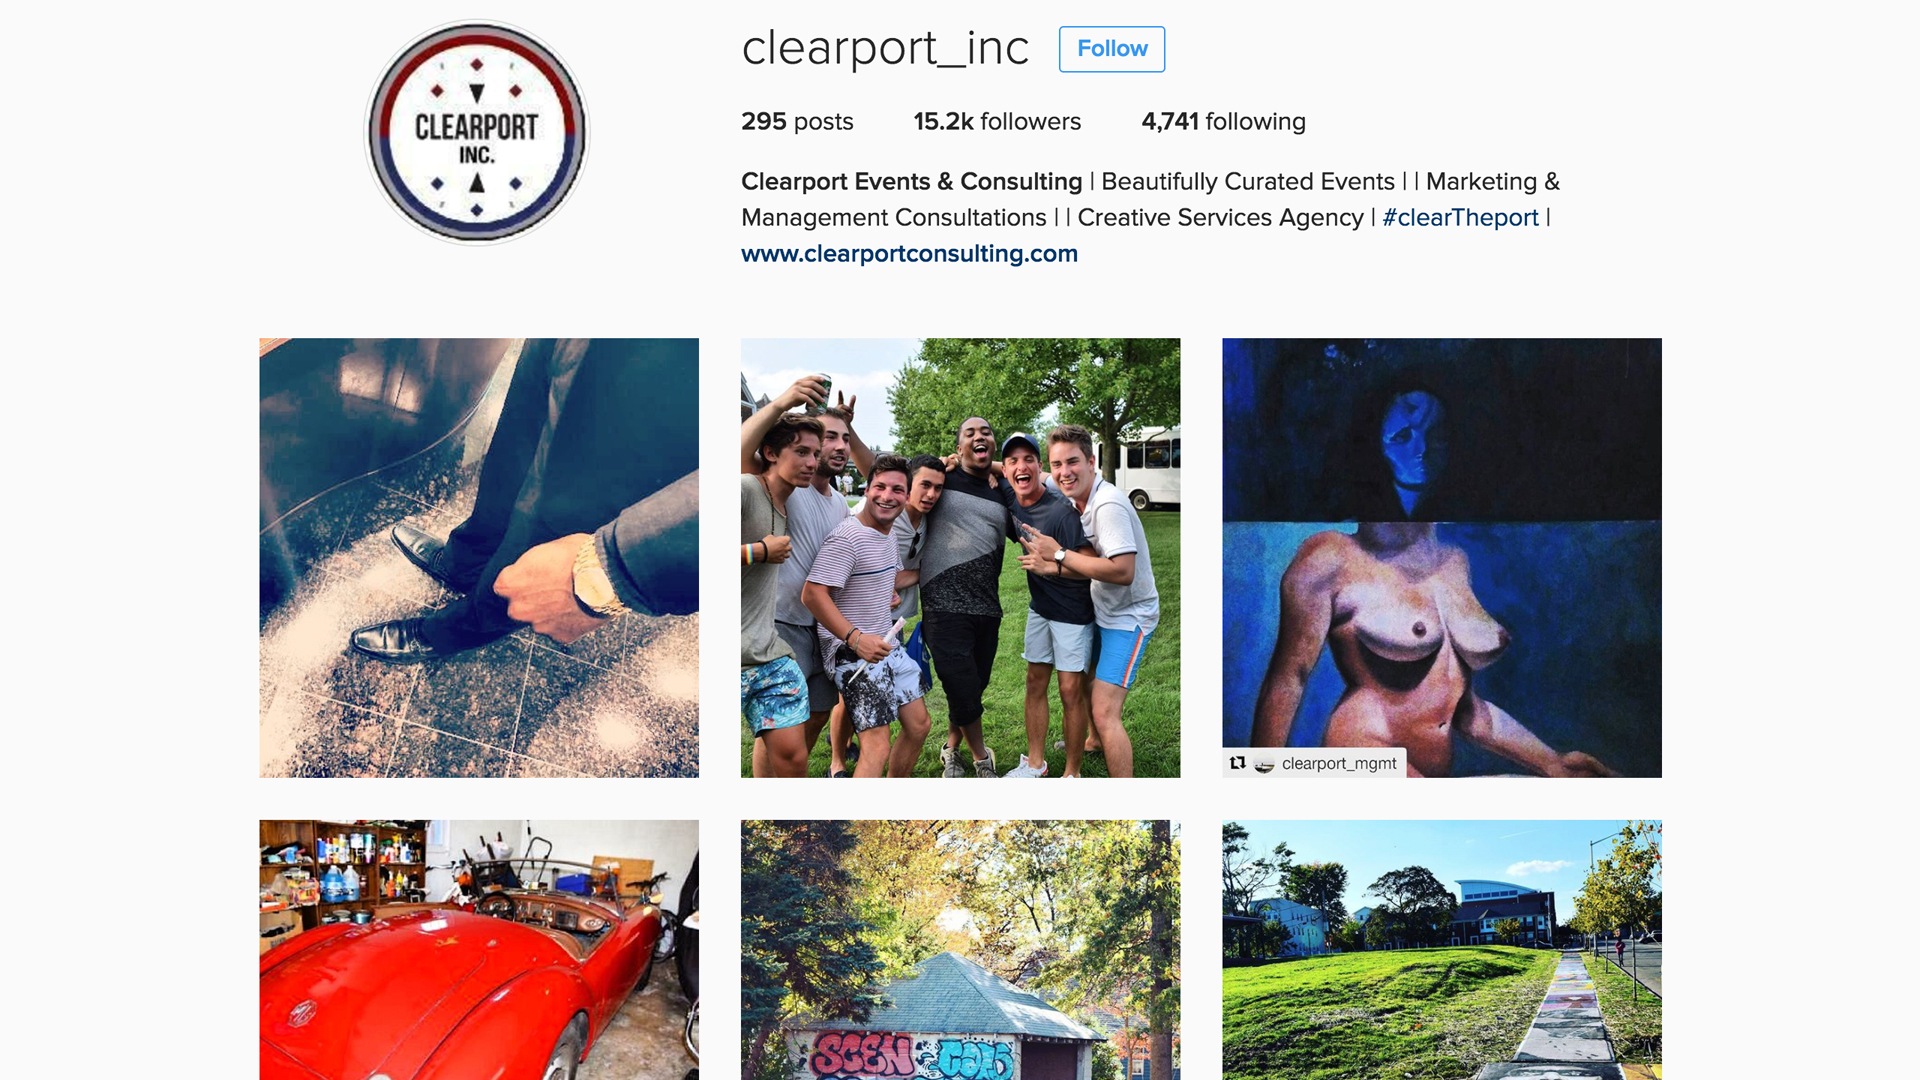 https://www.instagram.com/clearport_inc/